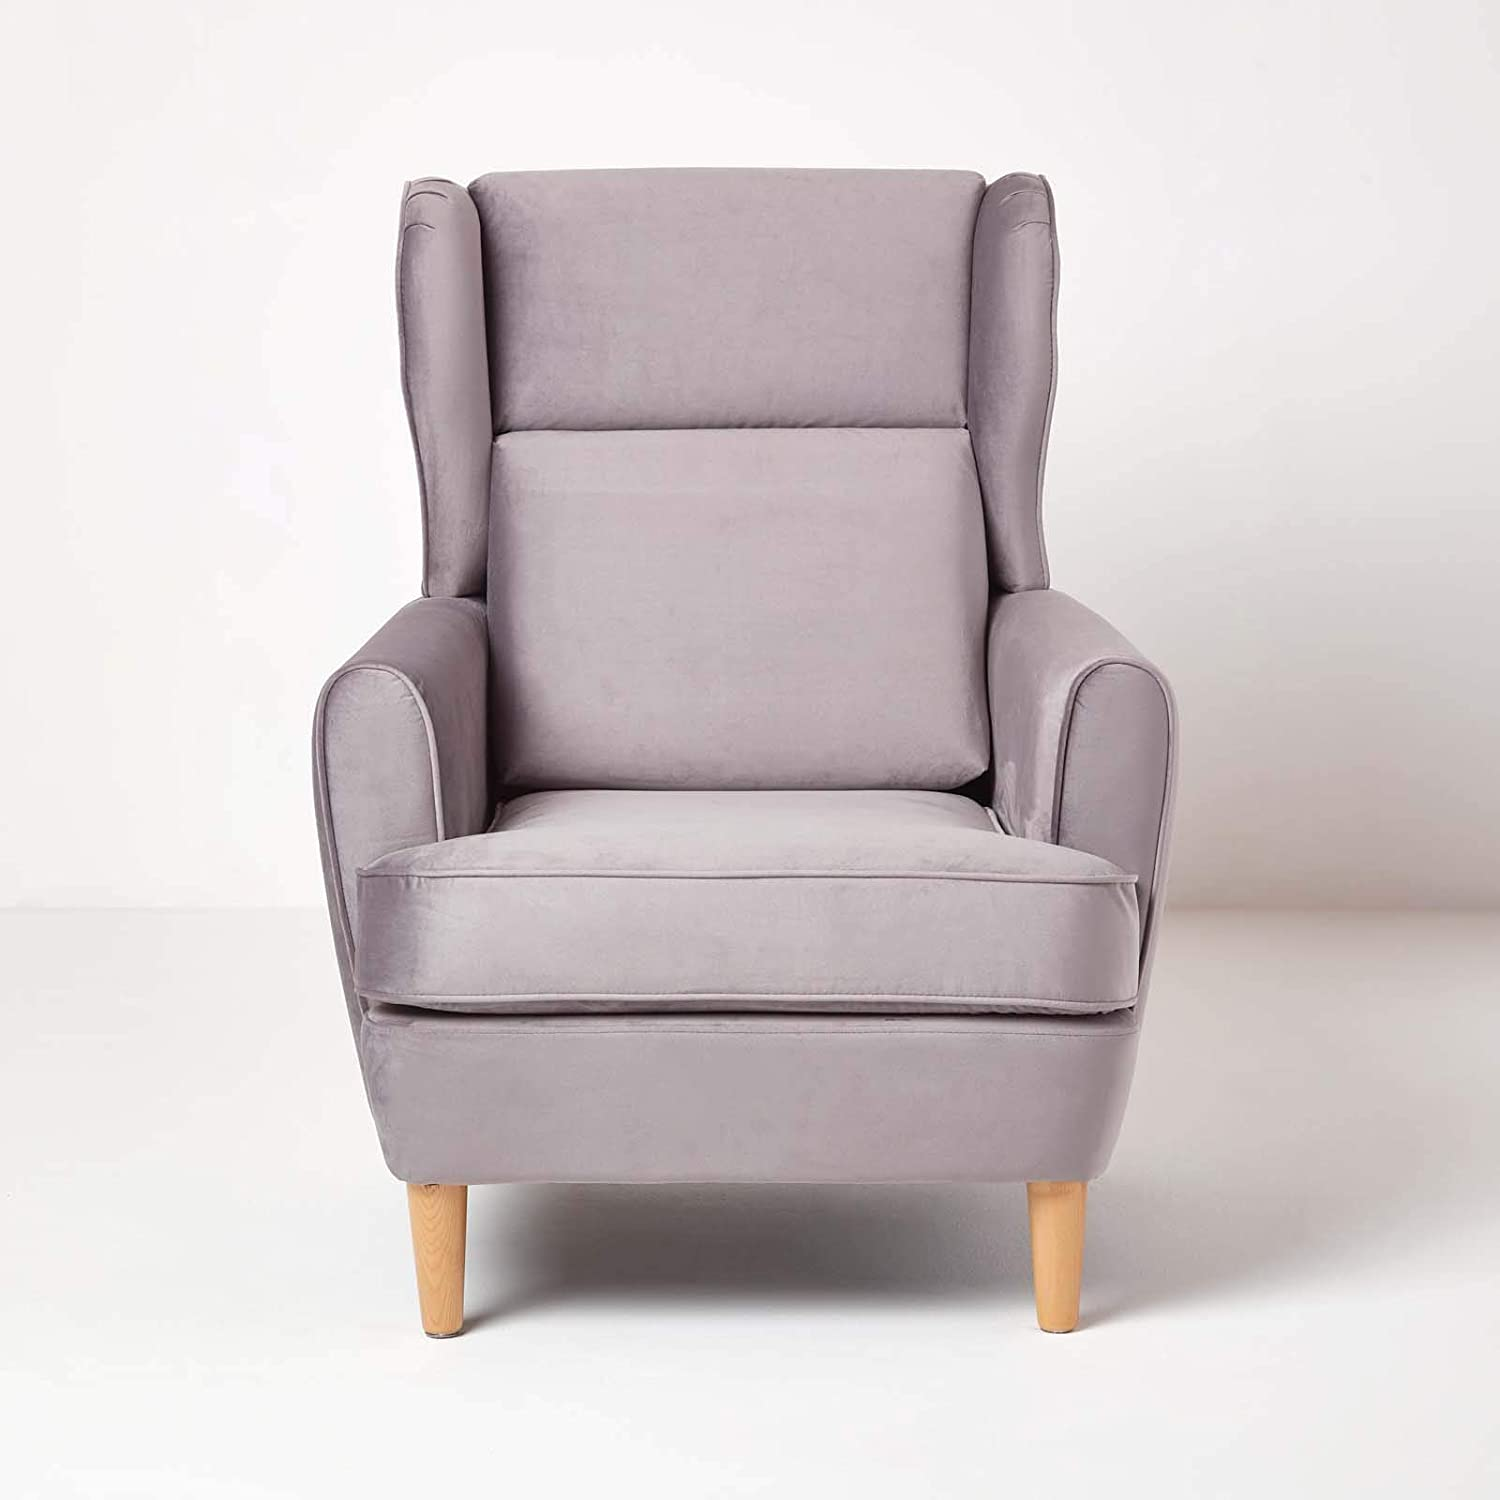 HOMESCAPES Silver Grey Velvet Armchair Soft Upholstered Wing Back Fireside Armchair /'Rita/' Reading or Accent Retro Chair for Living Room